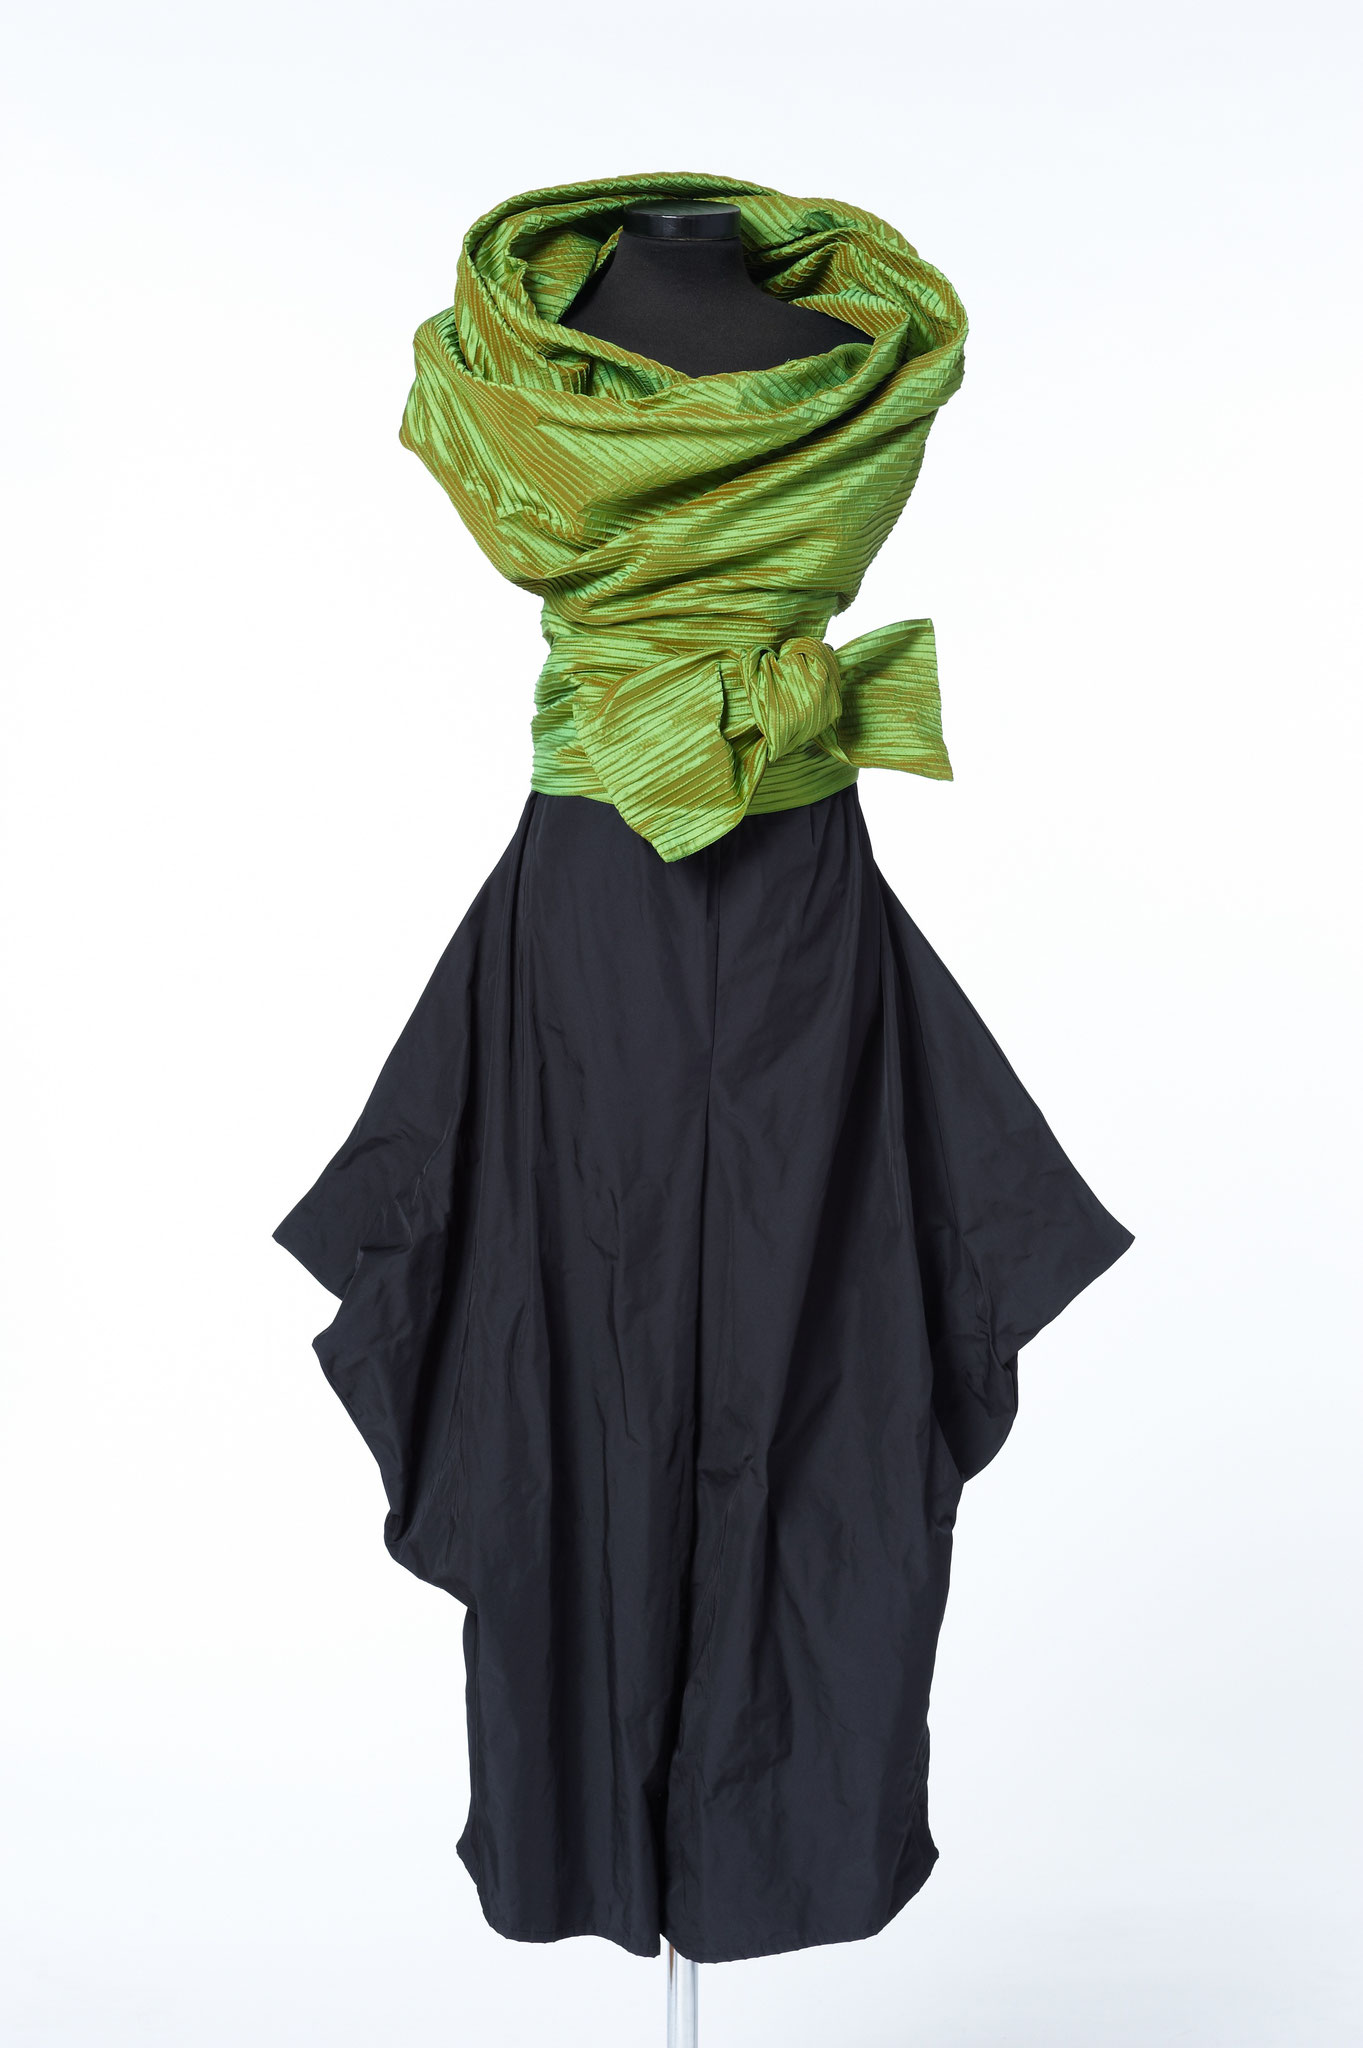 2-piece combination: trousers, changing top. Material: microfiber/silk